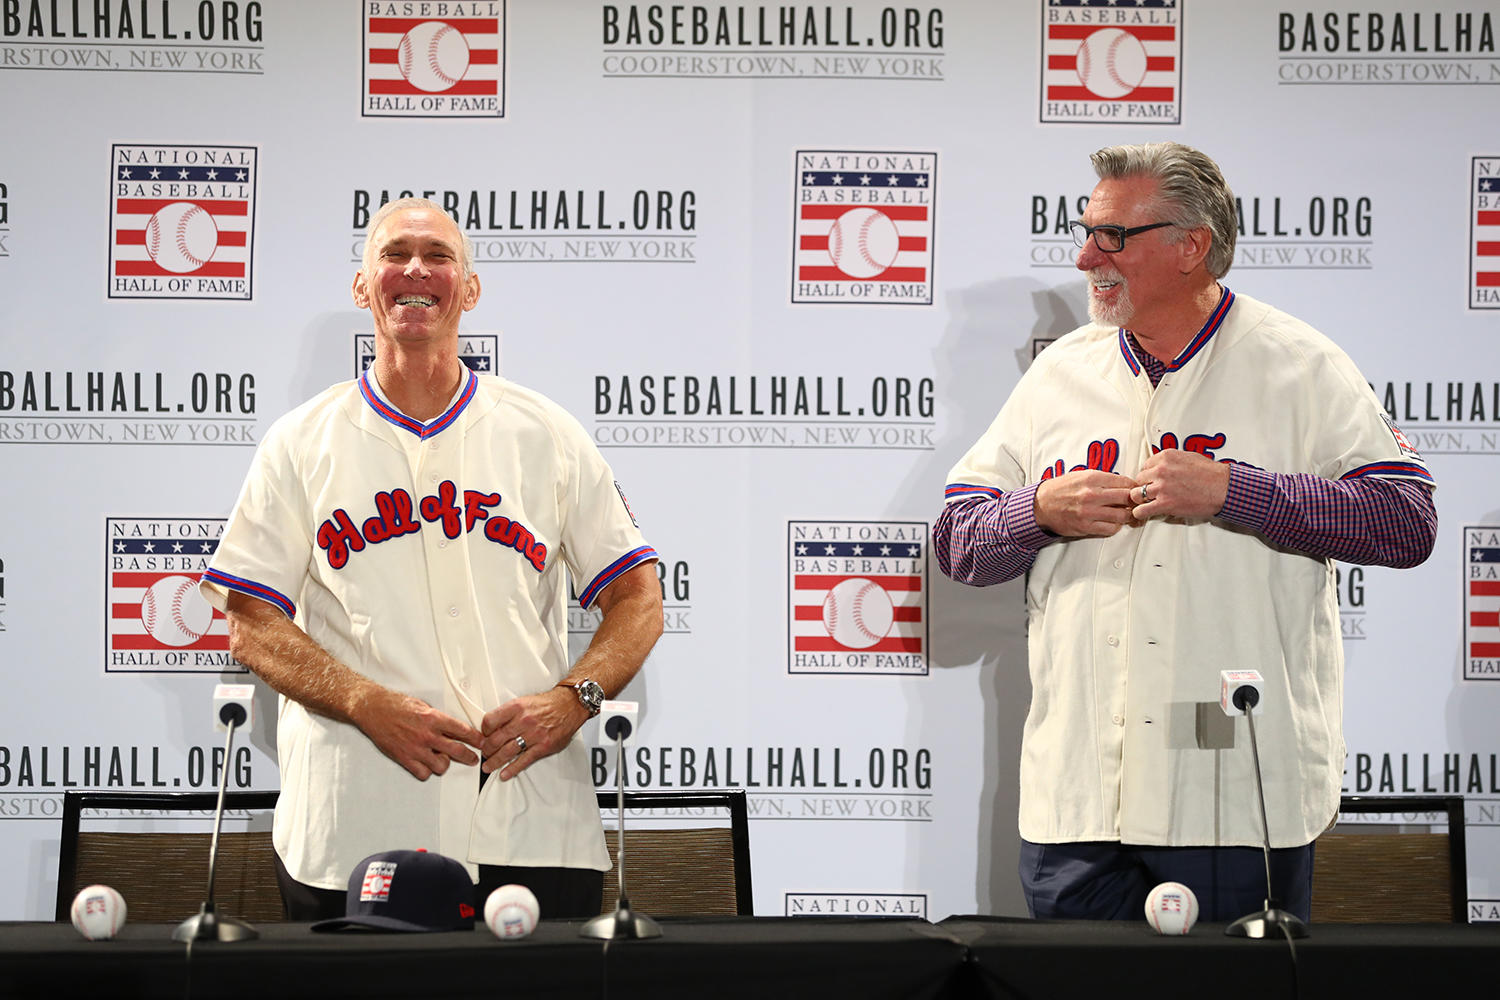 Alan Trammell and Jack Morris try on their new Hall of Fame jerseys following the Modern Baseball Era electee press conference on Dec. 11, 2017. (Alex Trautwig/MLB Photos)